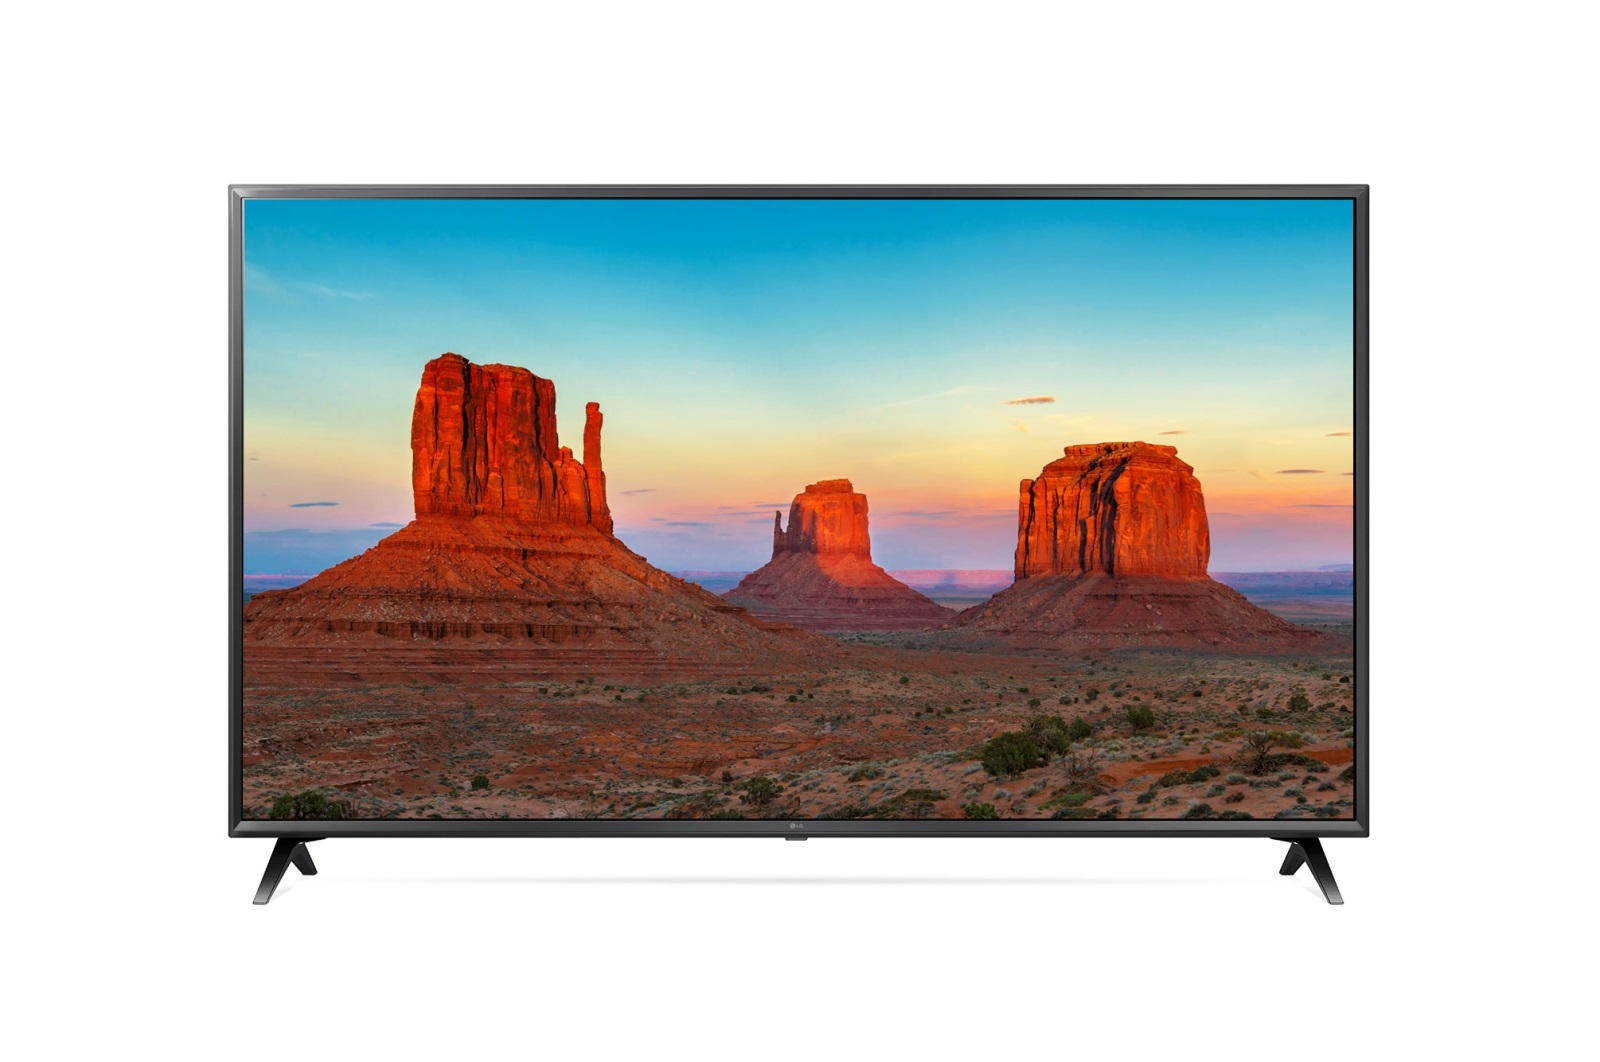 "LG 55UK6300 SMART LED TV 55"" (139cm) UHD"